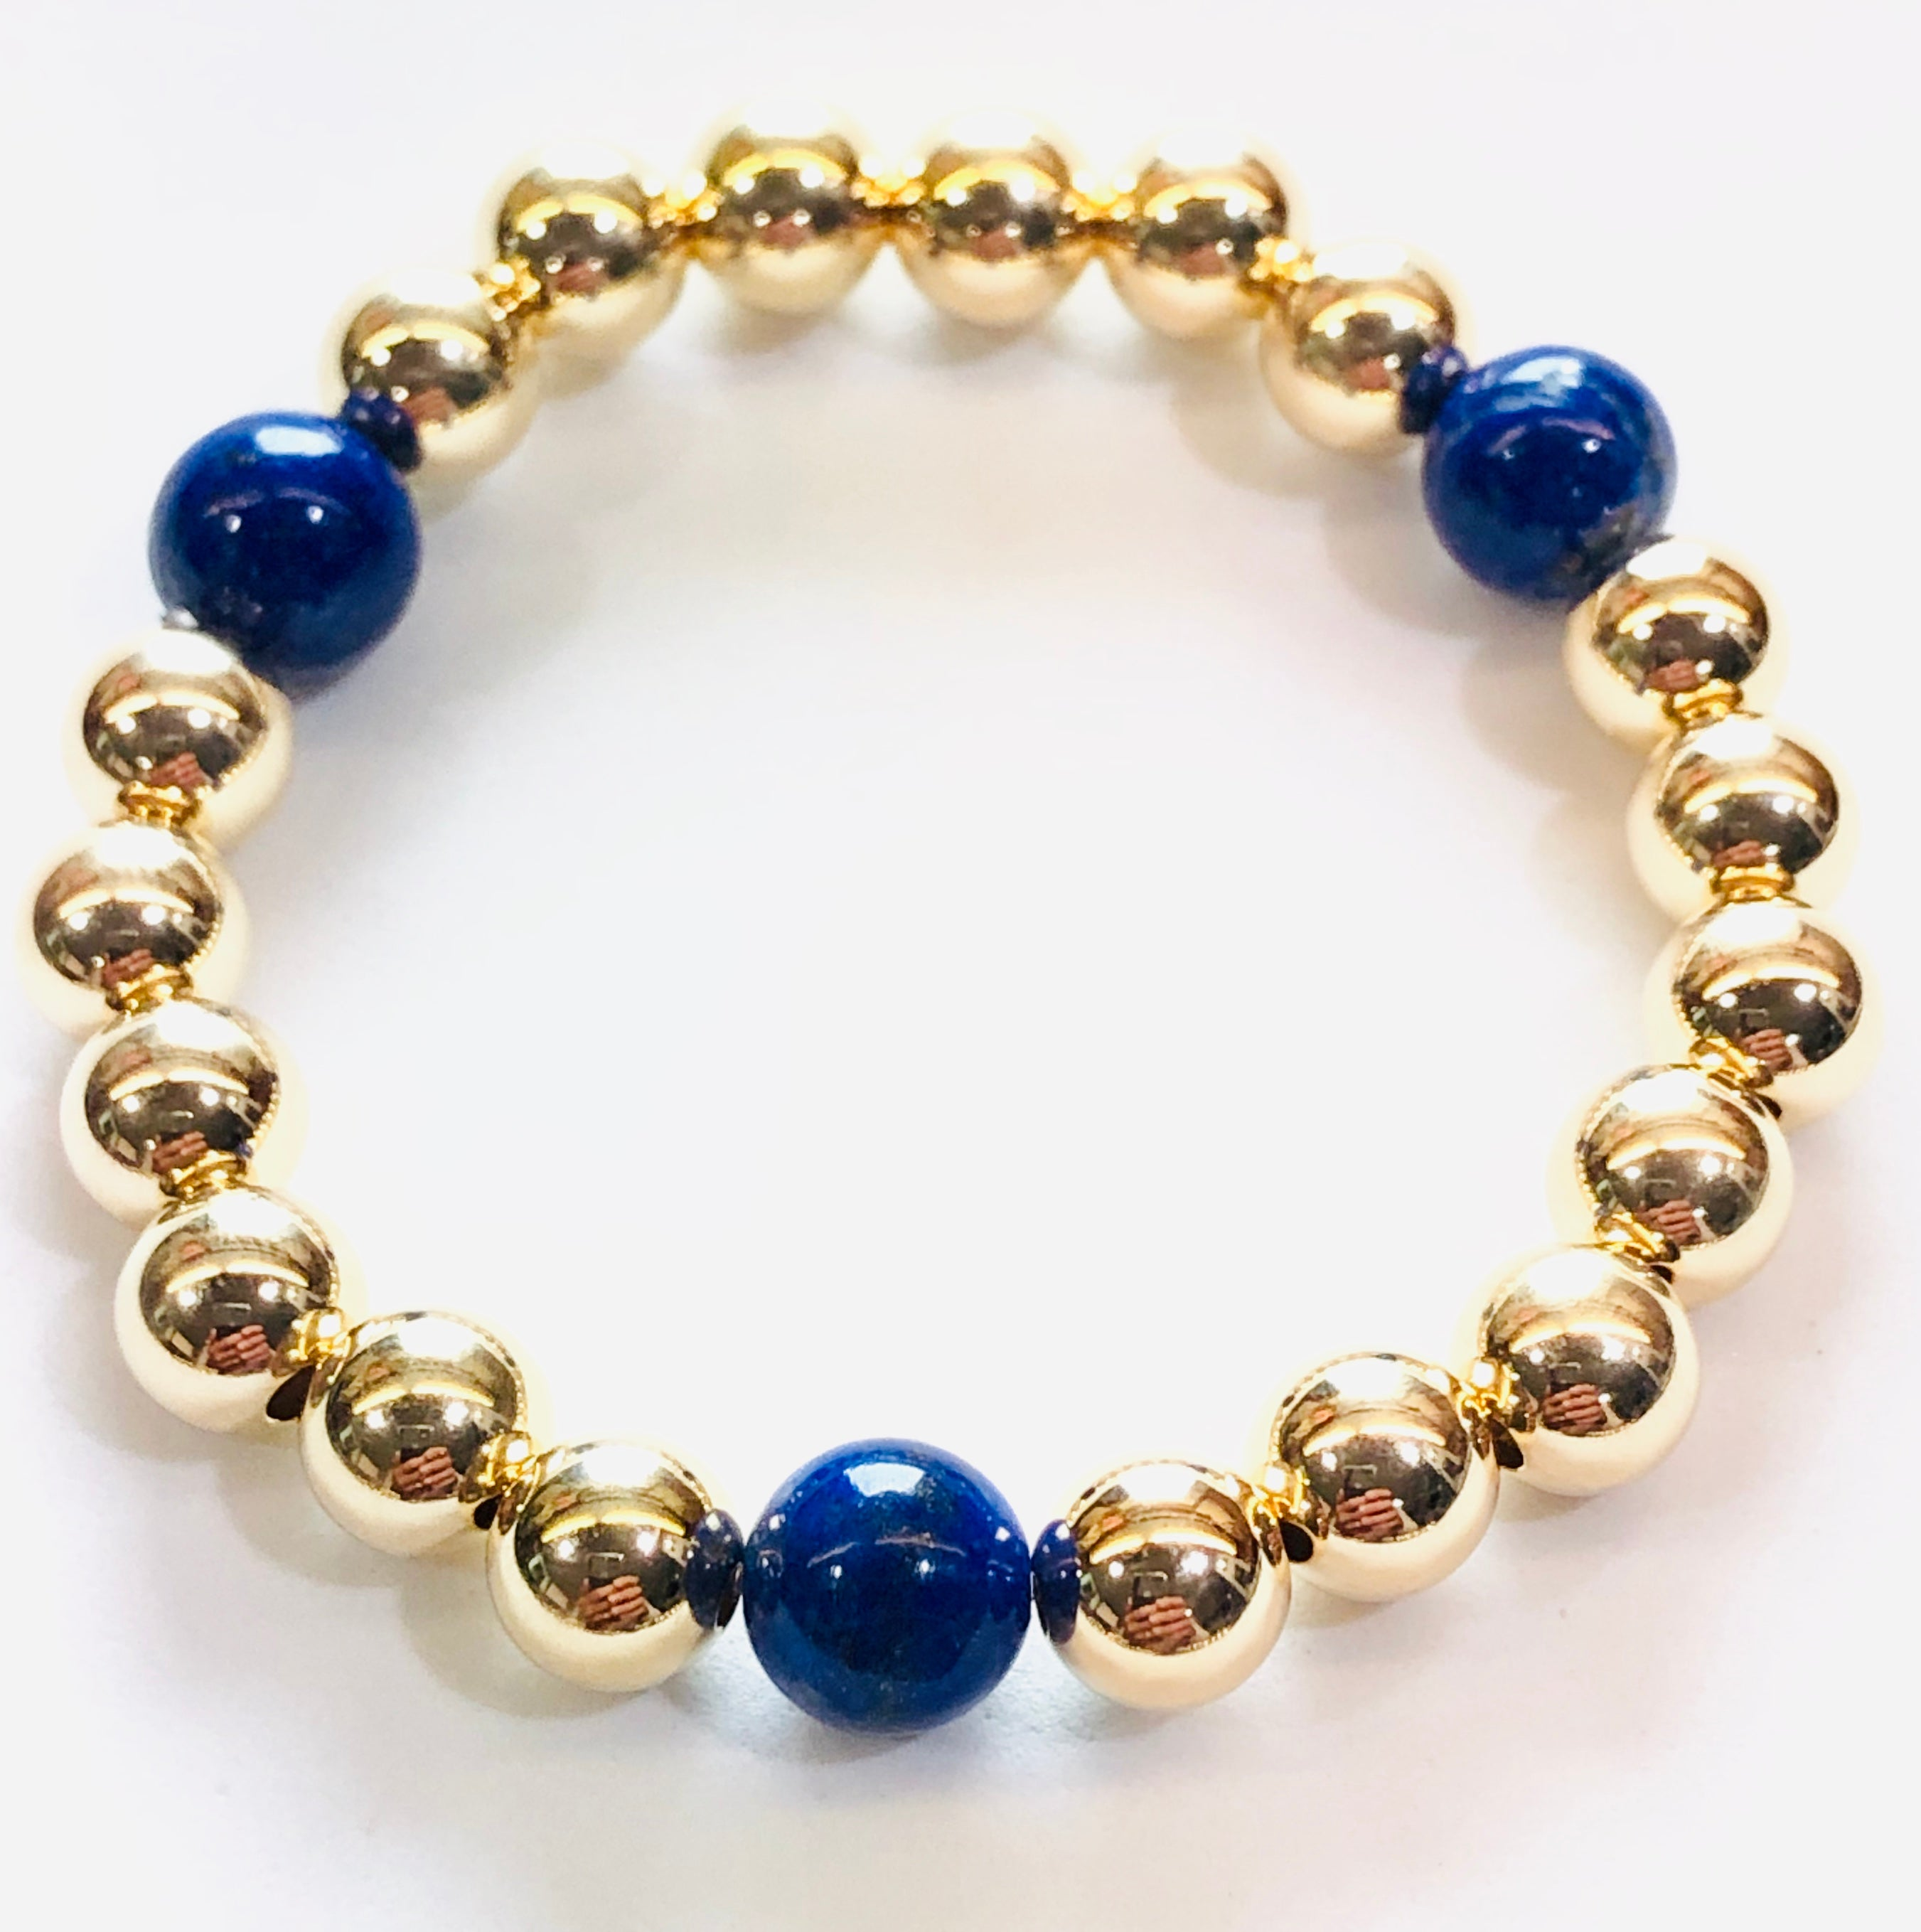 8mm 14kt Gold Filled Bead Bracelet with 3 8mm Blue Lapis Beads